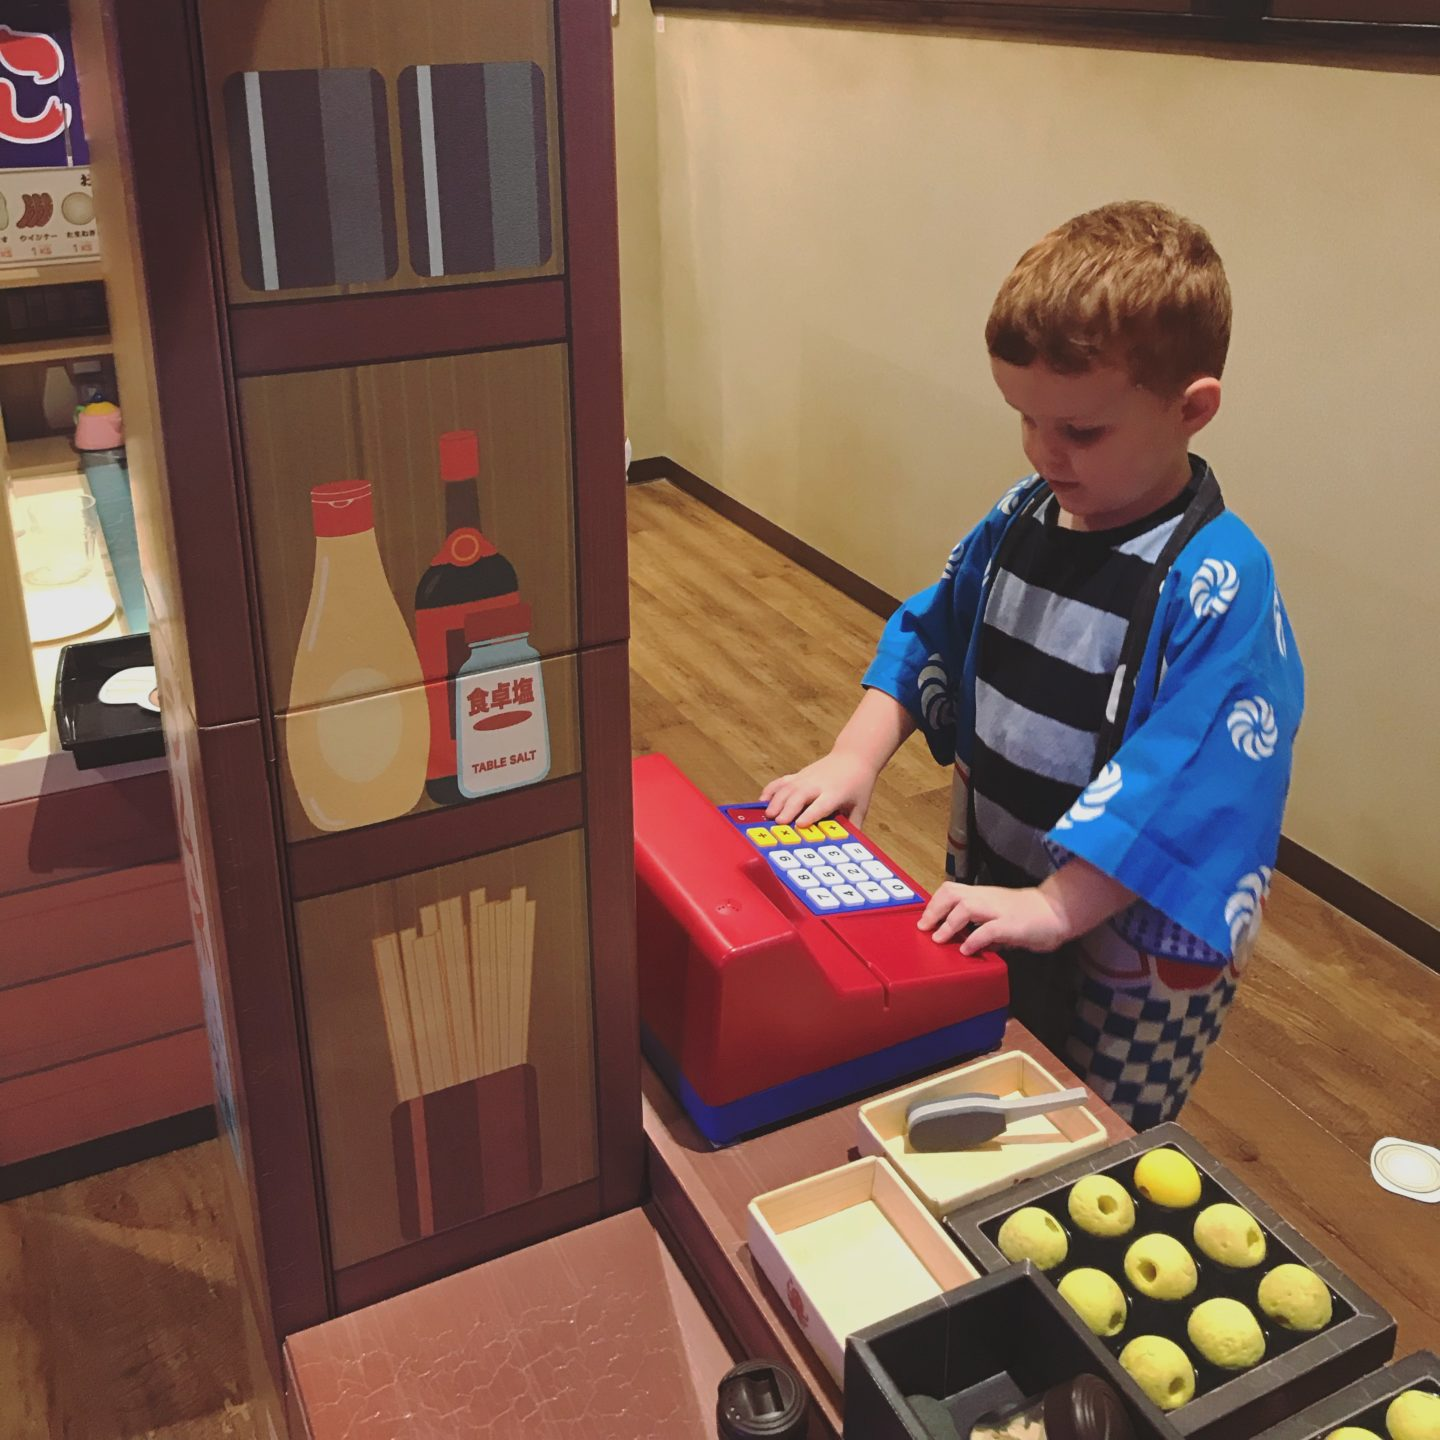 WHAT TO DO AROUND TOKYO SKYTREE WITH KIDS – The Tokyo Chapter